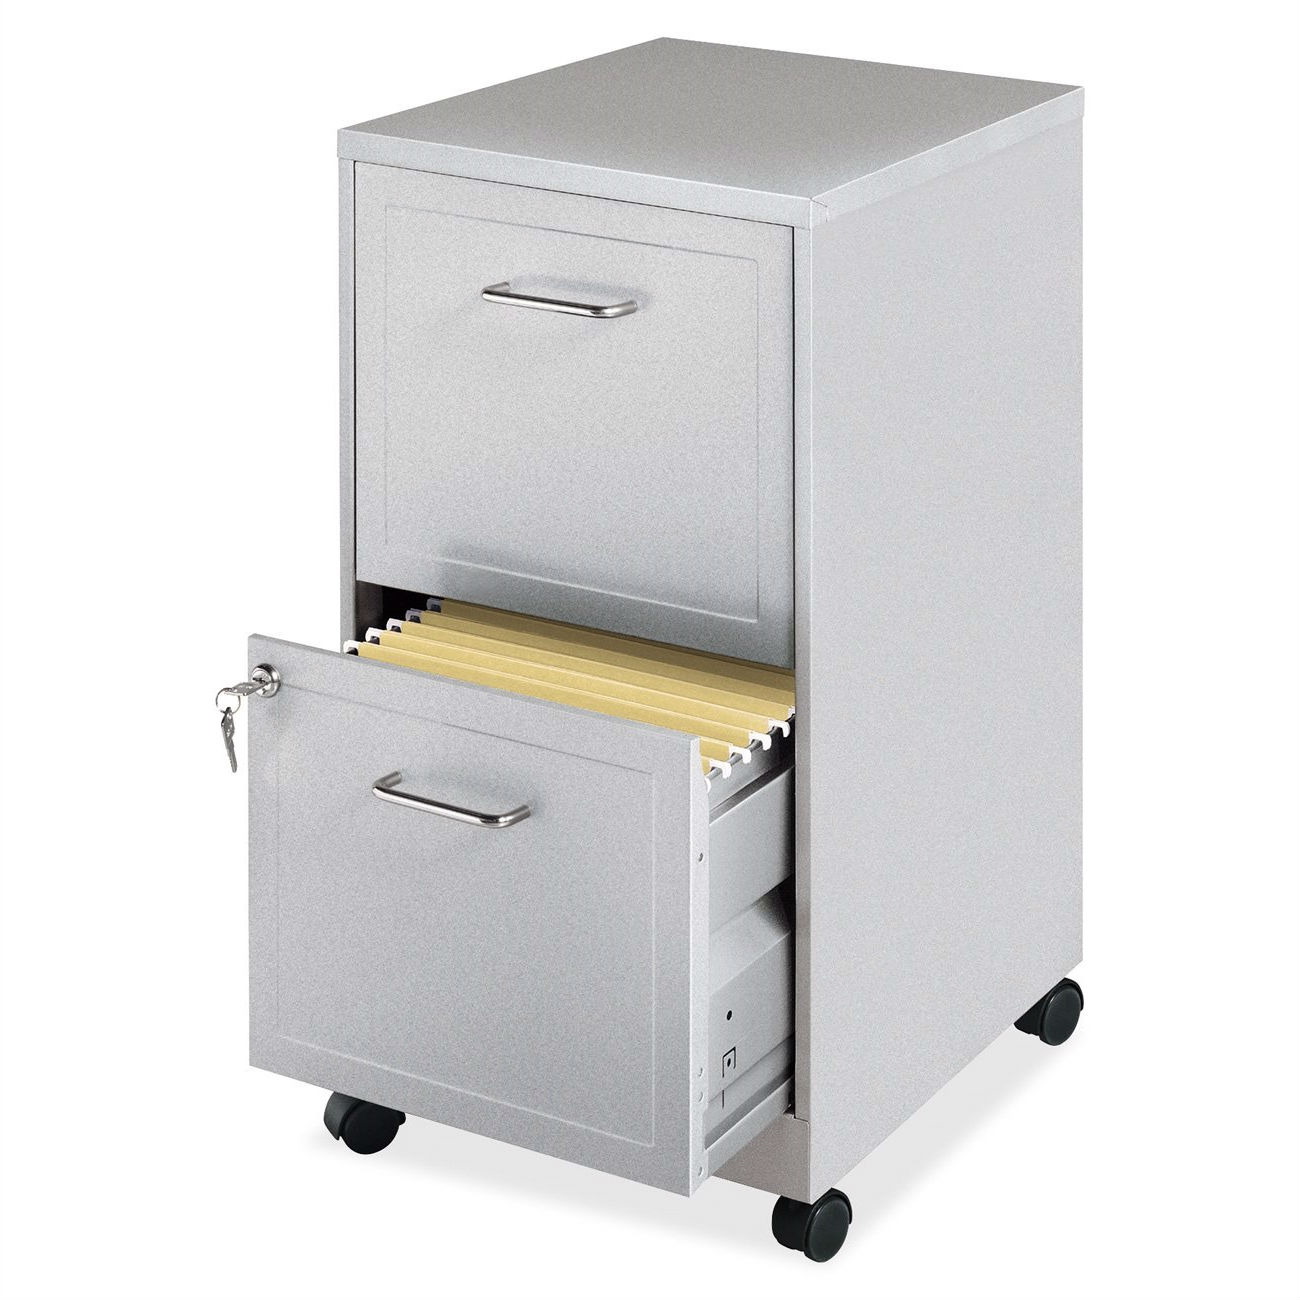 Marvelous Gray Silver Metal 2 Drawer File Cabinet With Casters Download Free Architecture Designs Embacsunscenecom